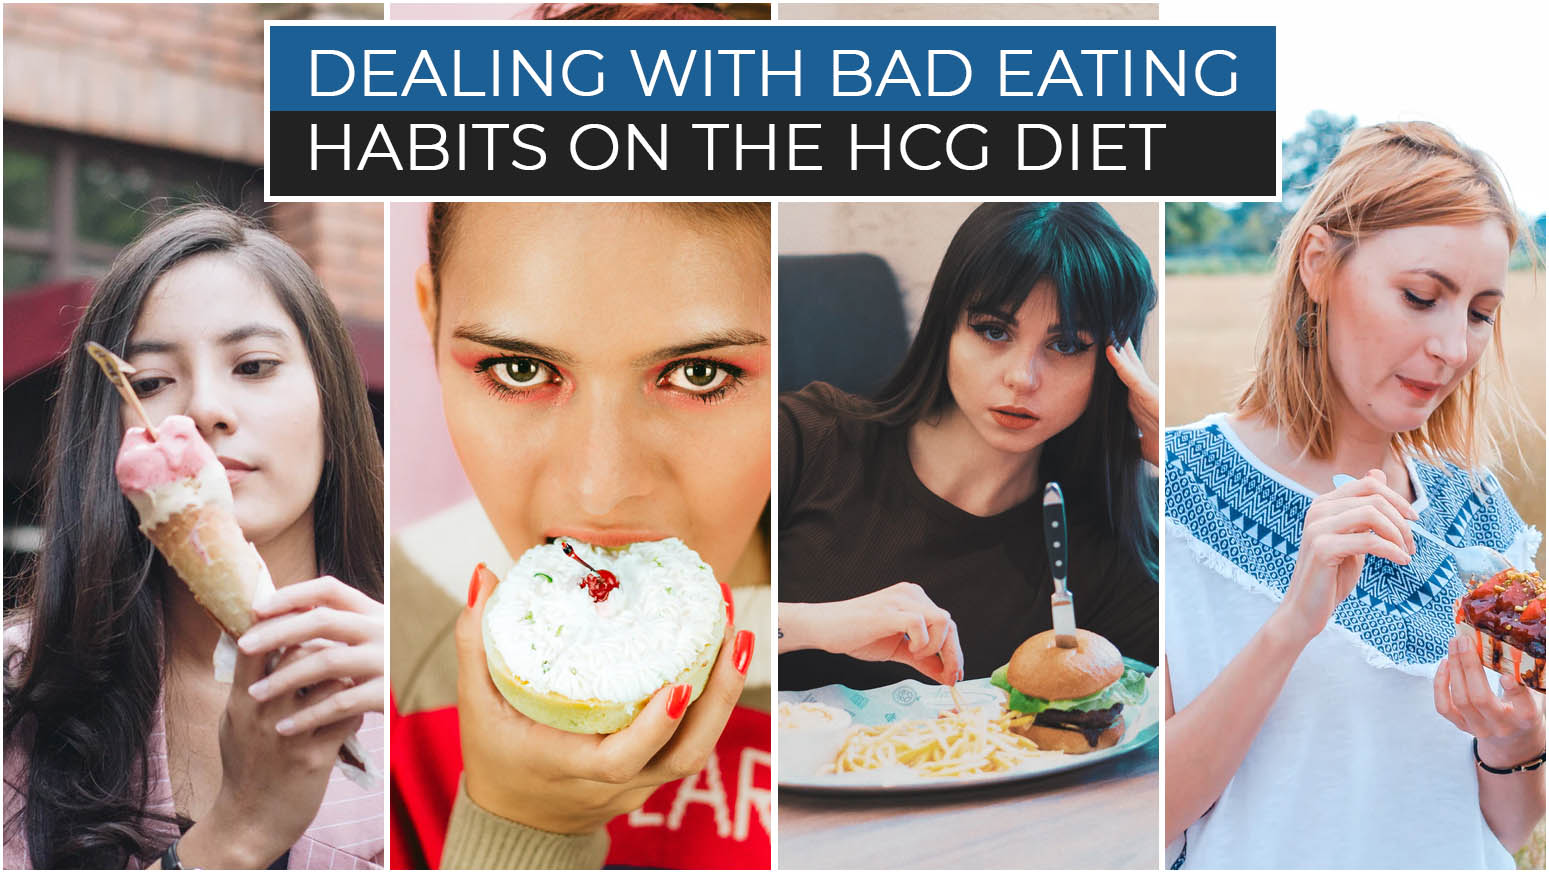 DEALING WITH BAD EATING HABITS ON THE HCG DIET